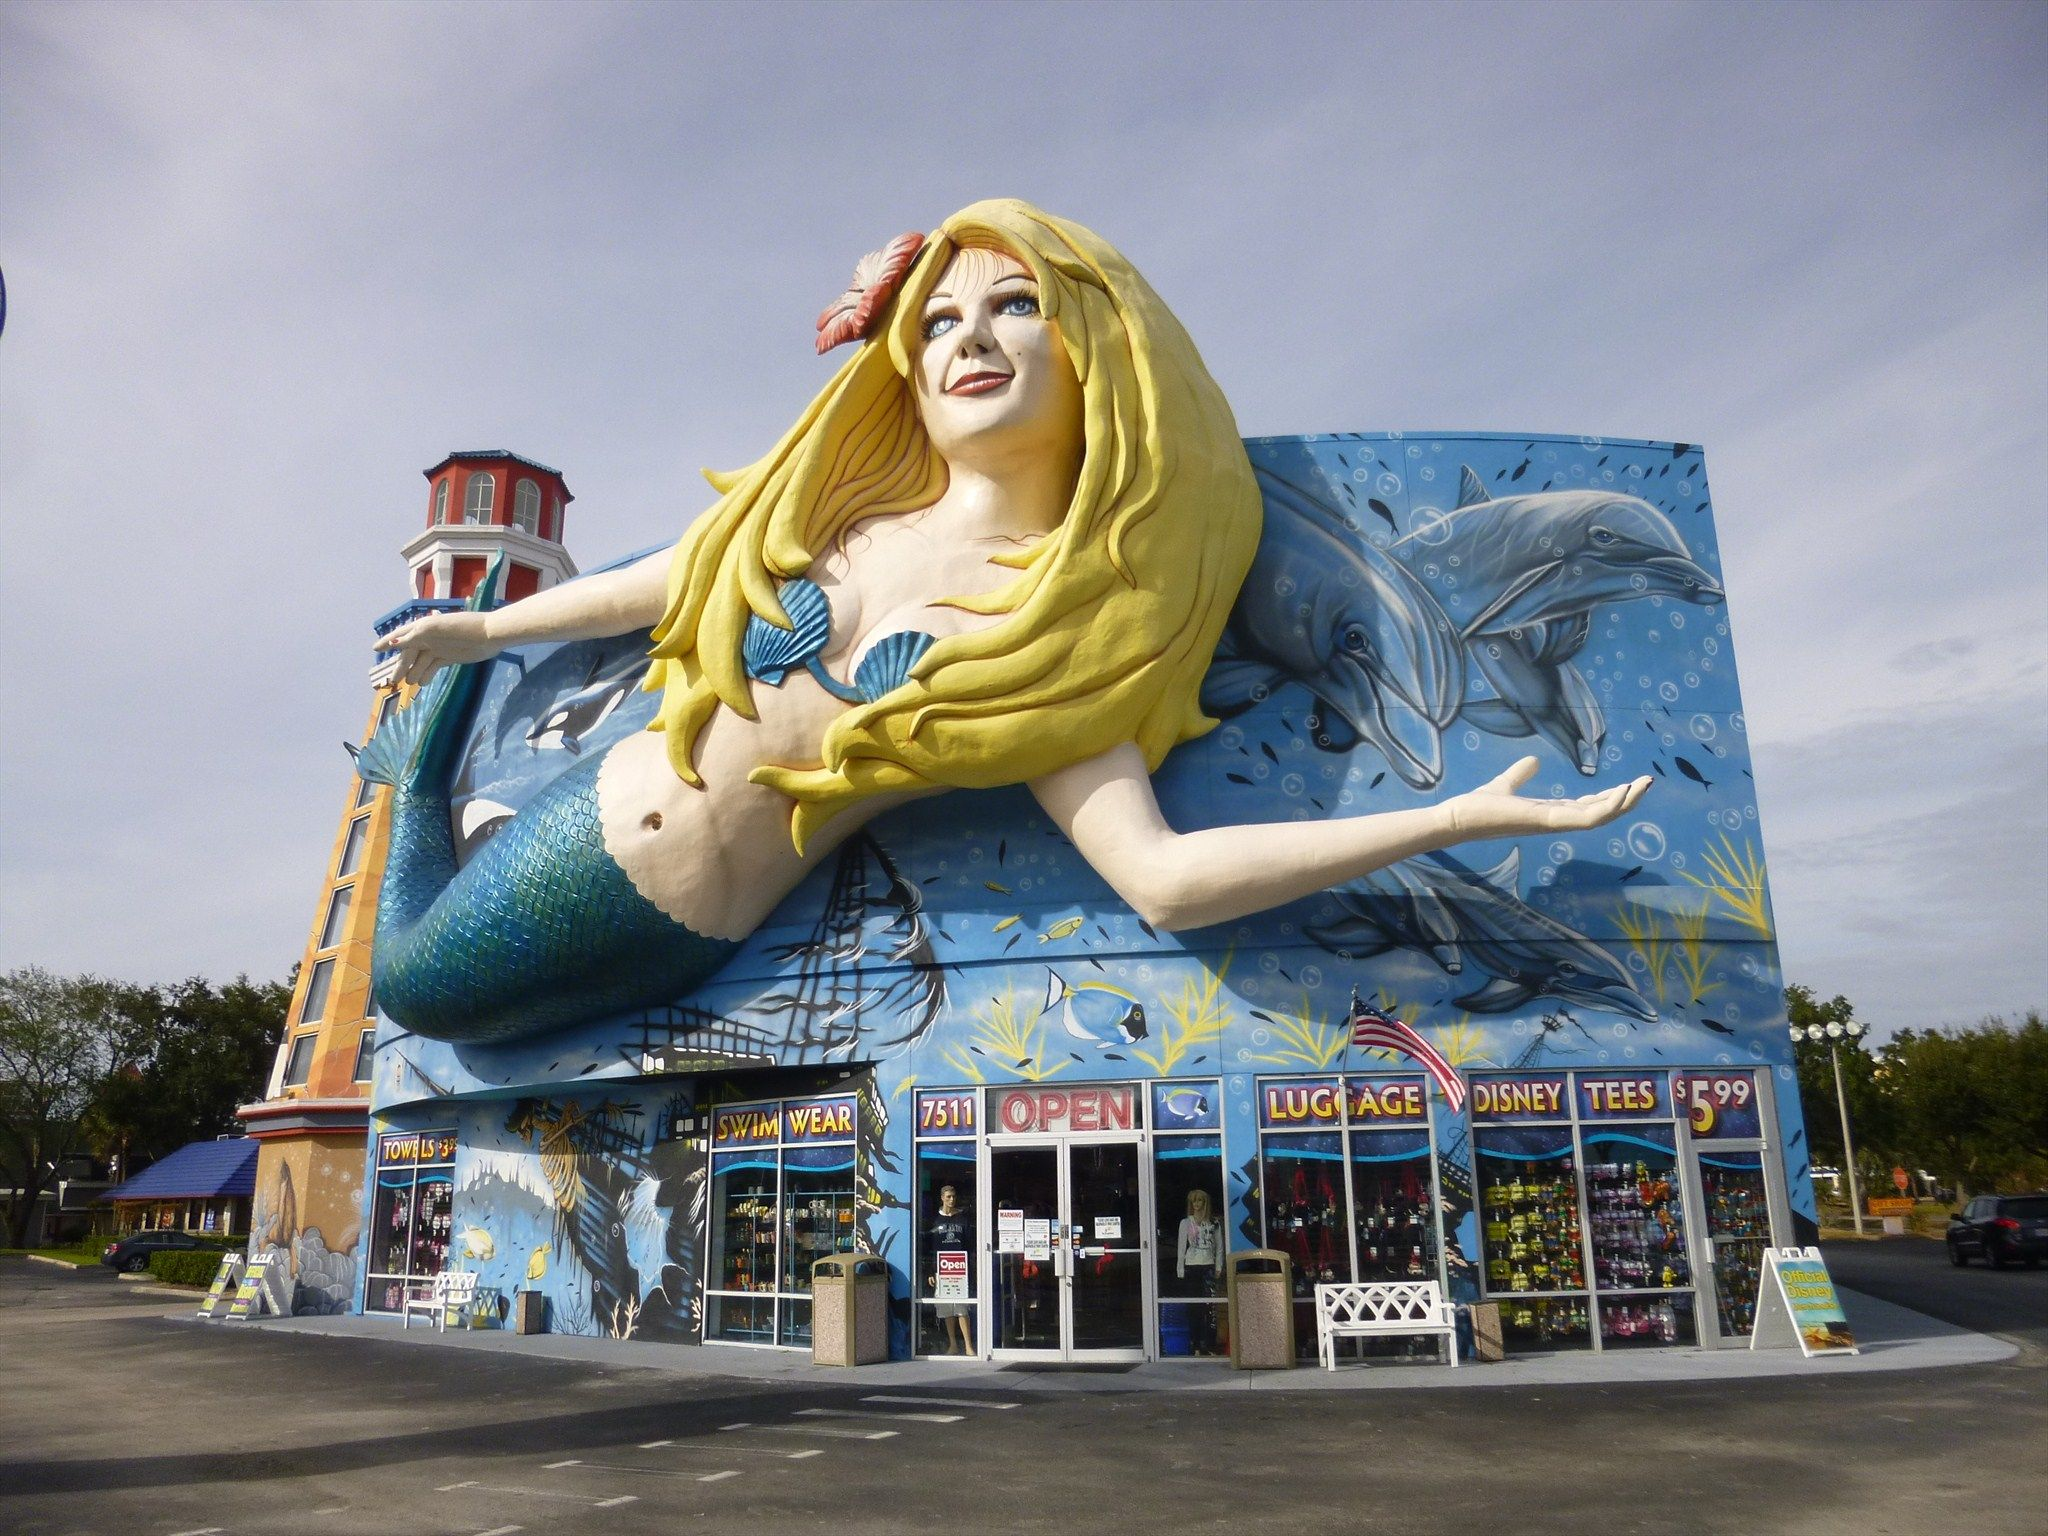 Mermaid 3d Art Gift Shop Us 192 Kissimmee Florida Mermaid Gifts Roadside Attractions Mermaid